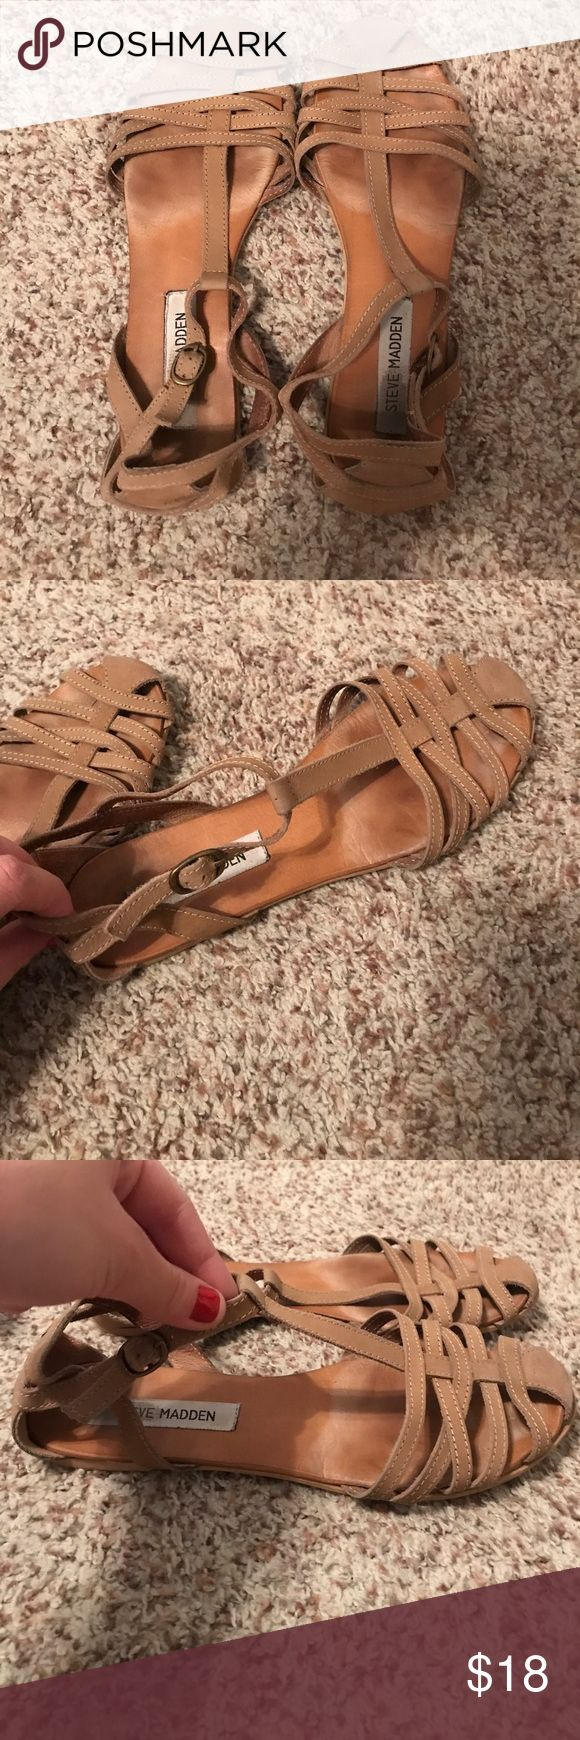 Steve Madden tan flats! Steve Madden, tan flats, size 8 Steve Madden Shoes Flats & Loafers